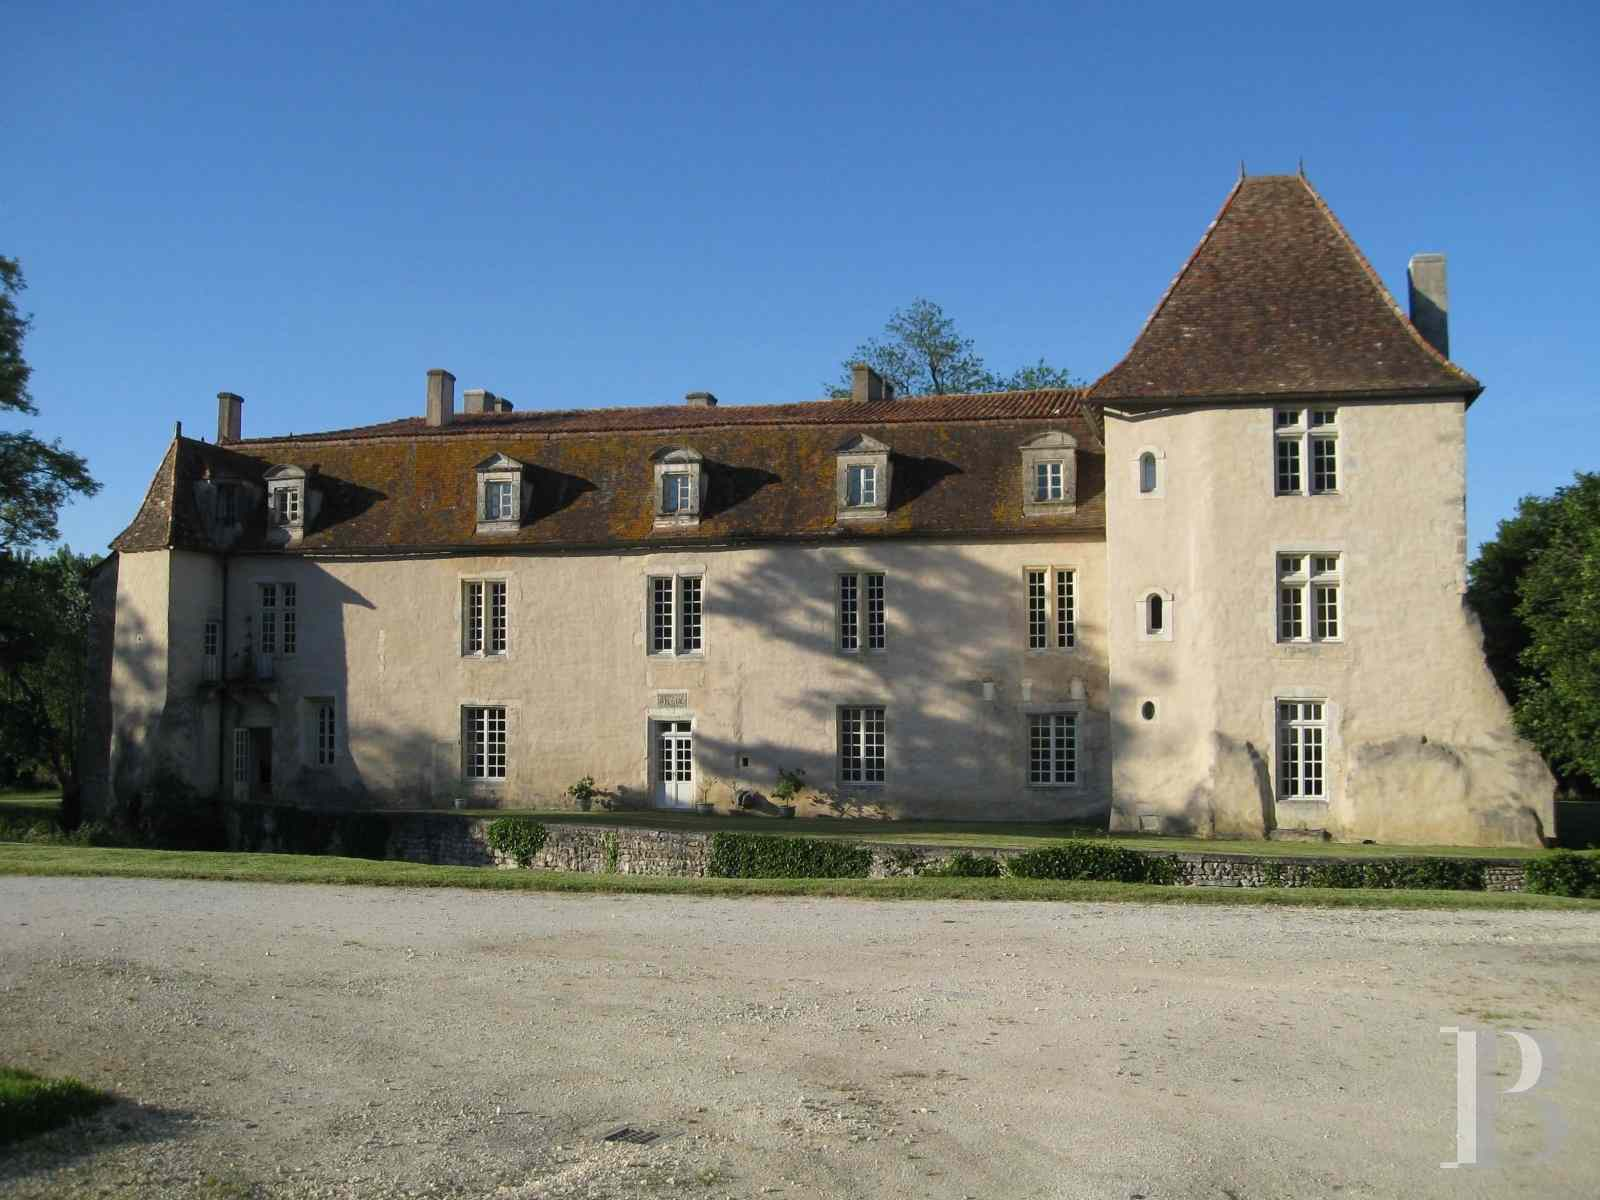 chateaux for sale France poitou charentes angouleme listed - 5 zoom